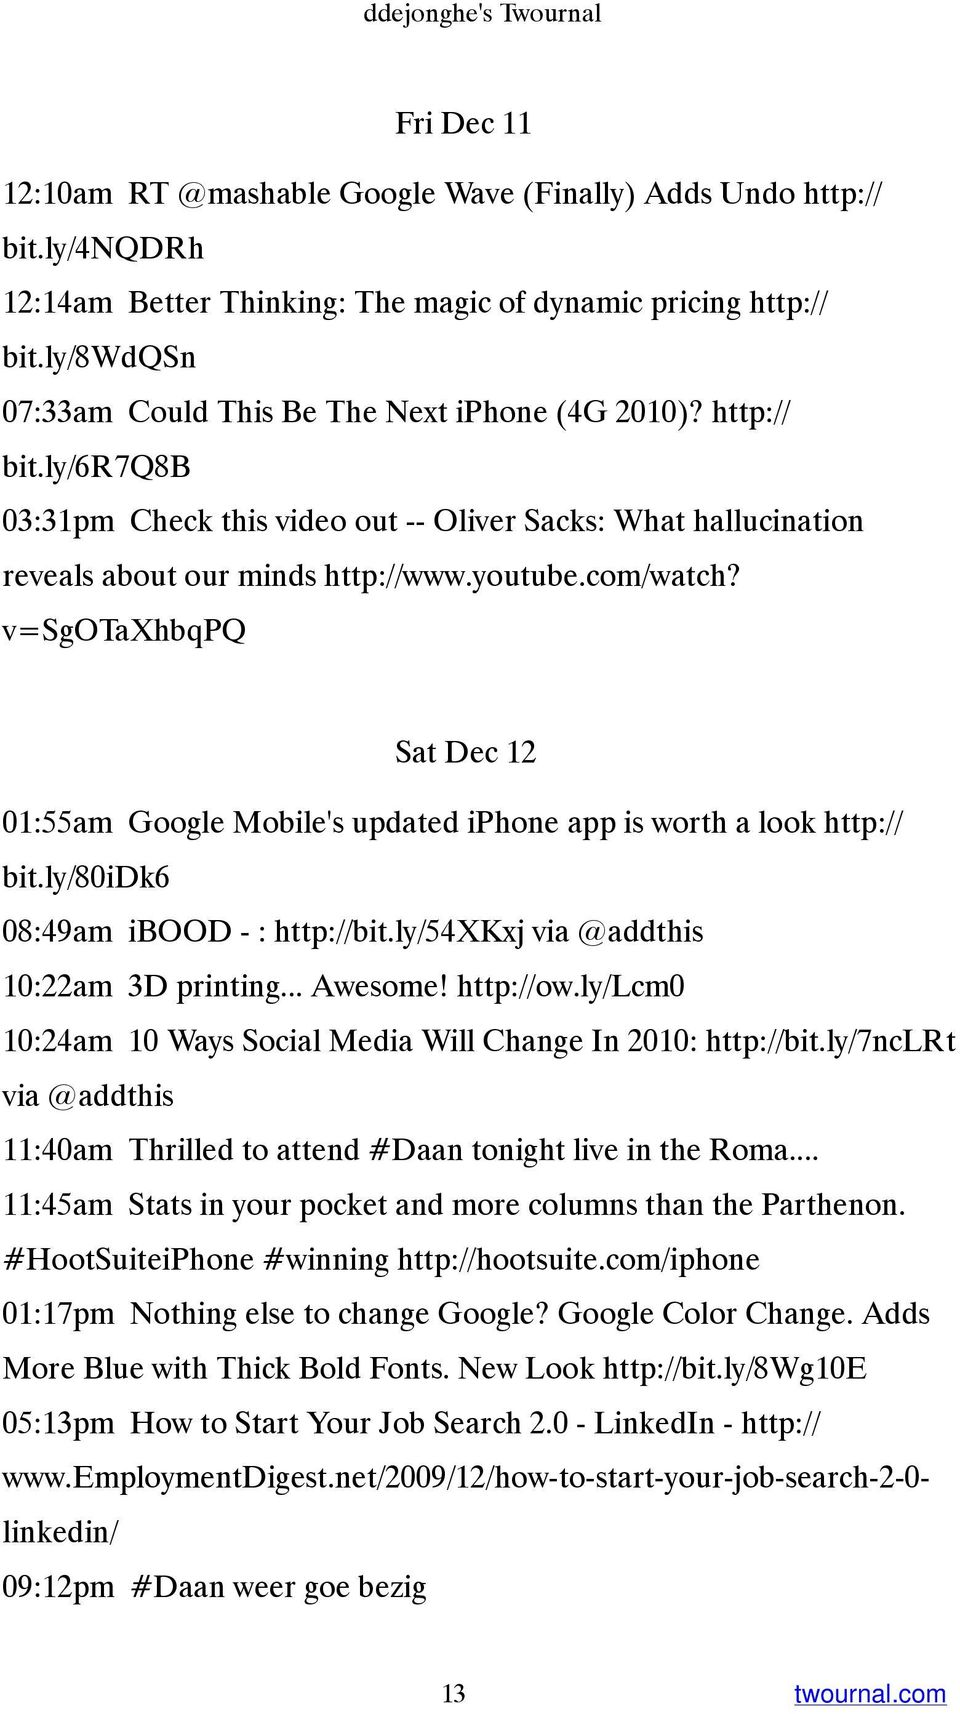 v=sgotaxhbqpq Sat Dec 12 01:55am Google Mobile's updated iphone app is worth a look http:// bit.ly/80idk6 08:49am ibood - : http://bit.ly/54xkxj via @addthis 10:22am 3D printing... Awesome! http://ow.